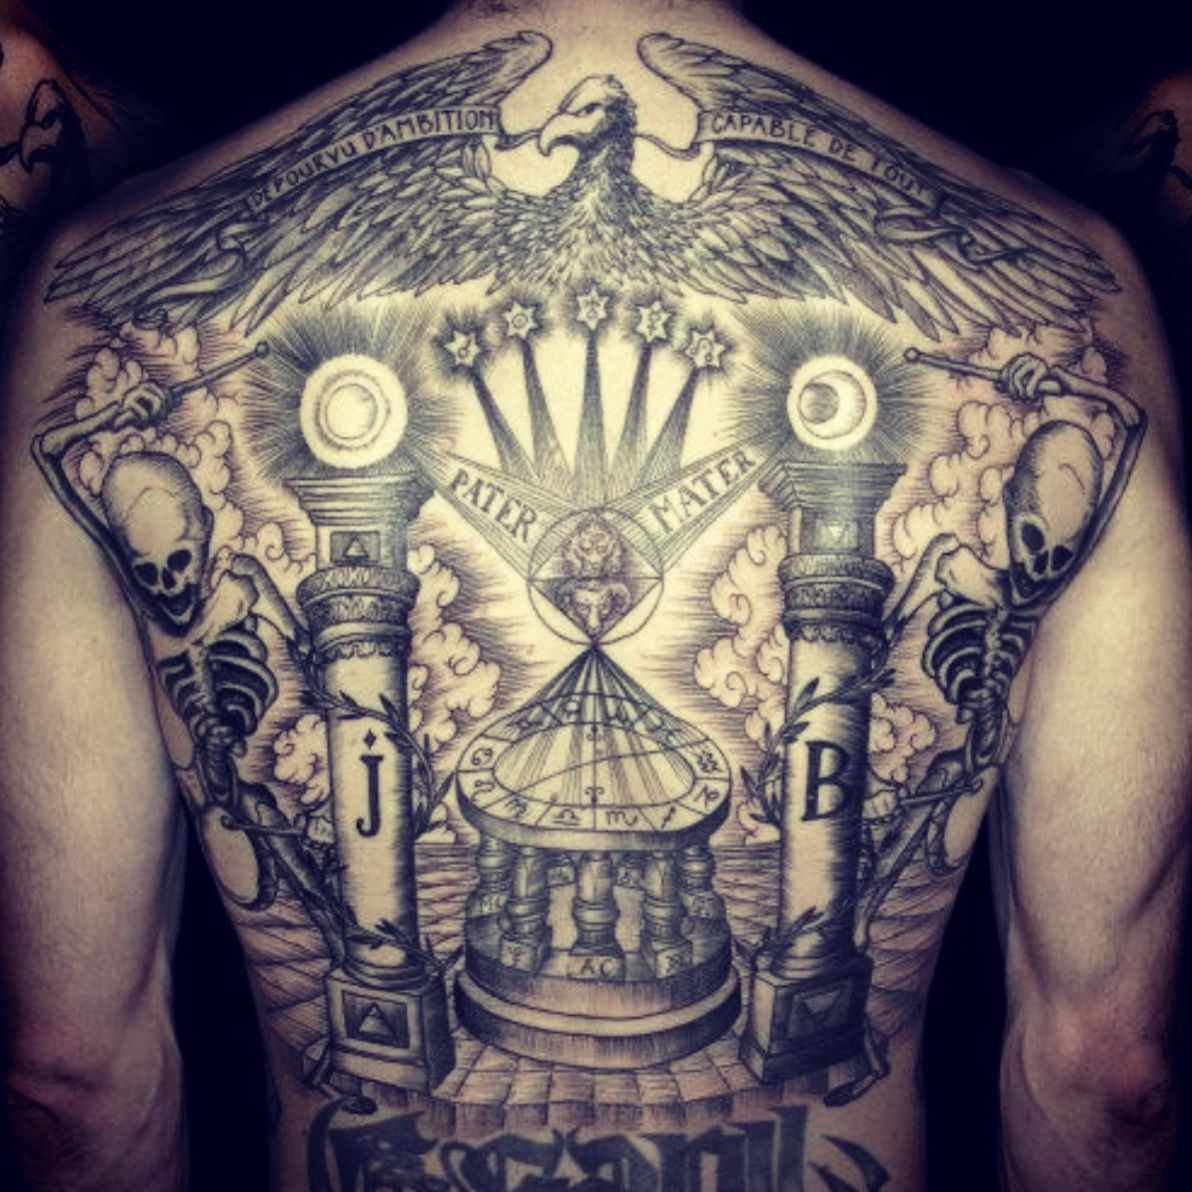 Pin By Mytorius On Believe Tattoo Men: Done By Easy Sacha - Mystery Tattoo Club -Paris